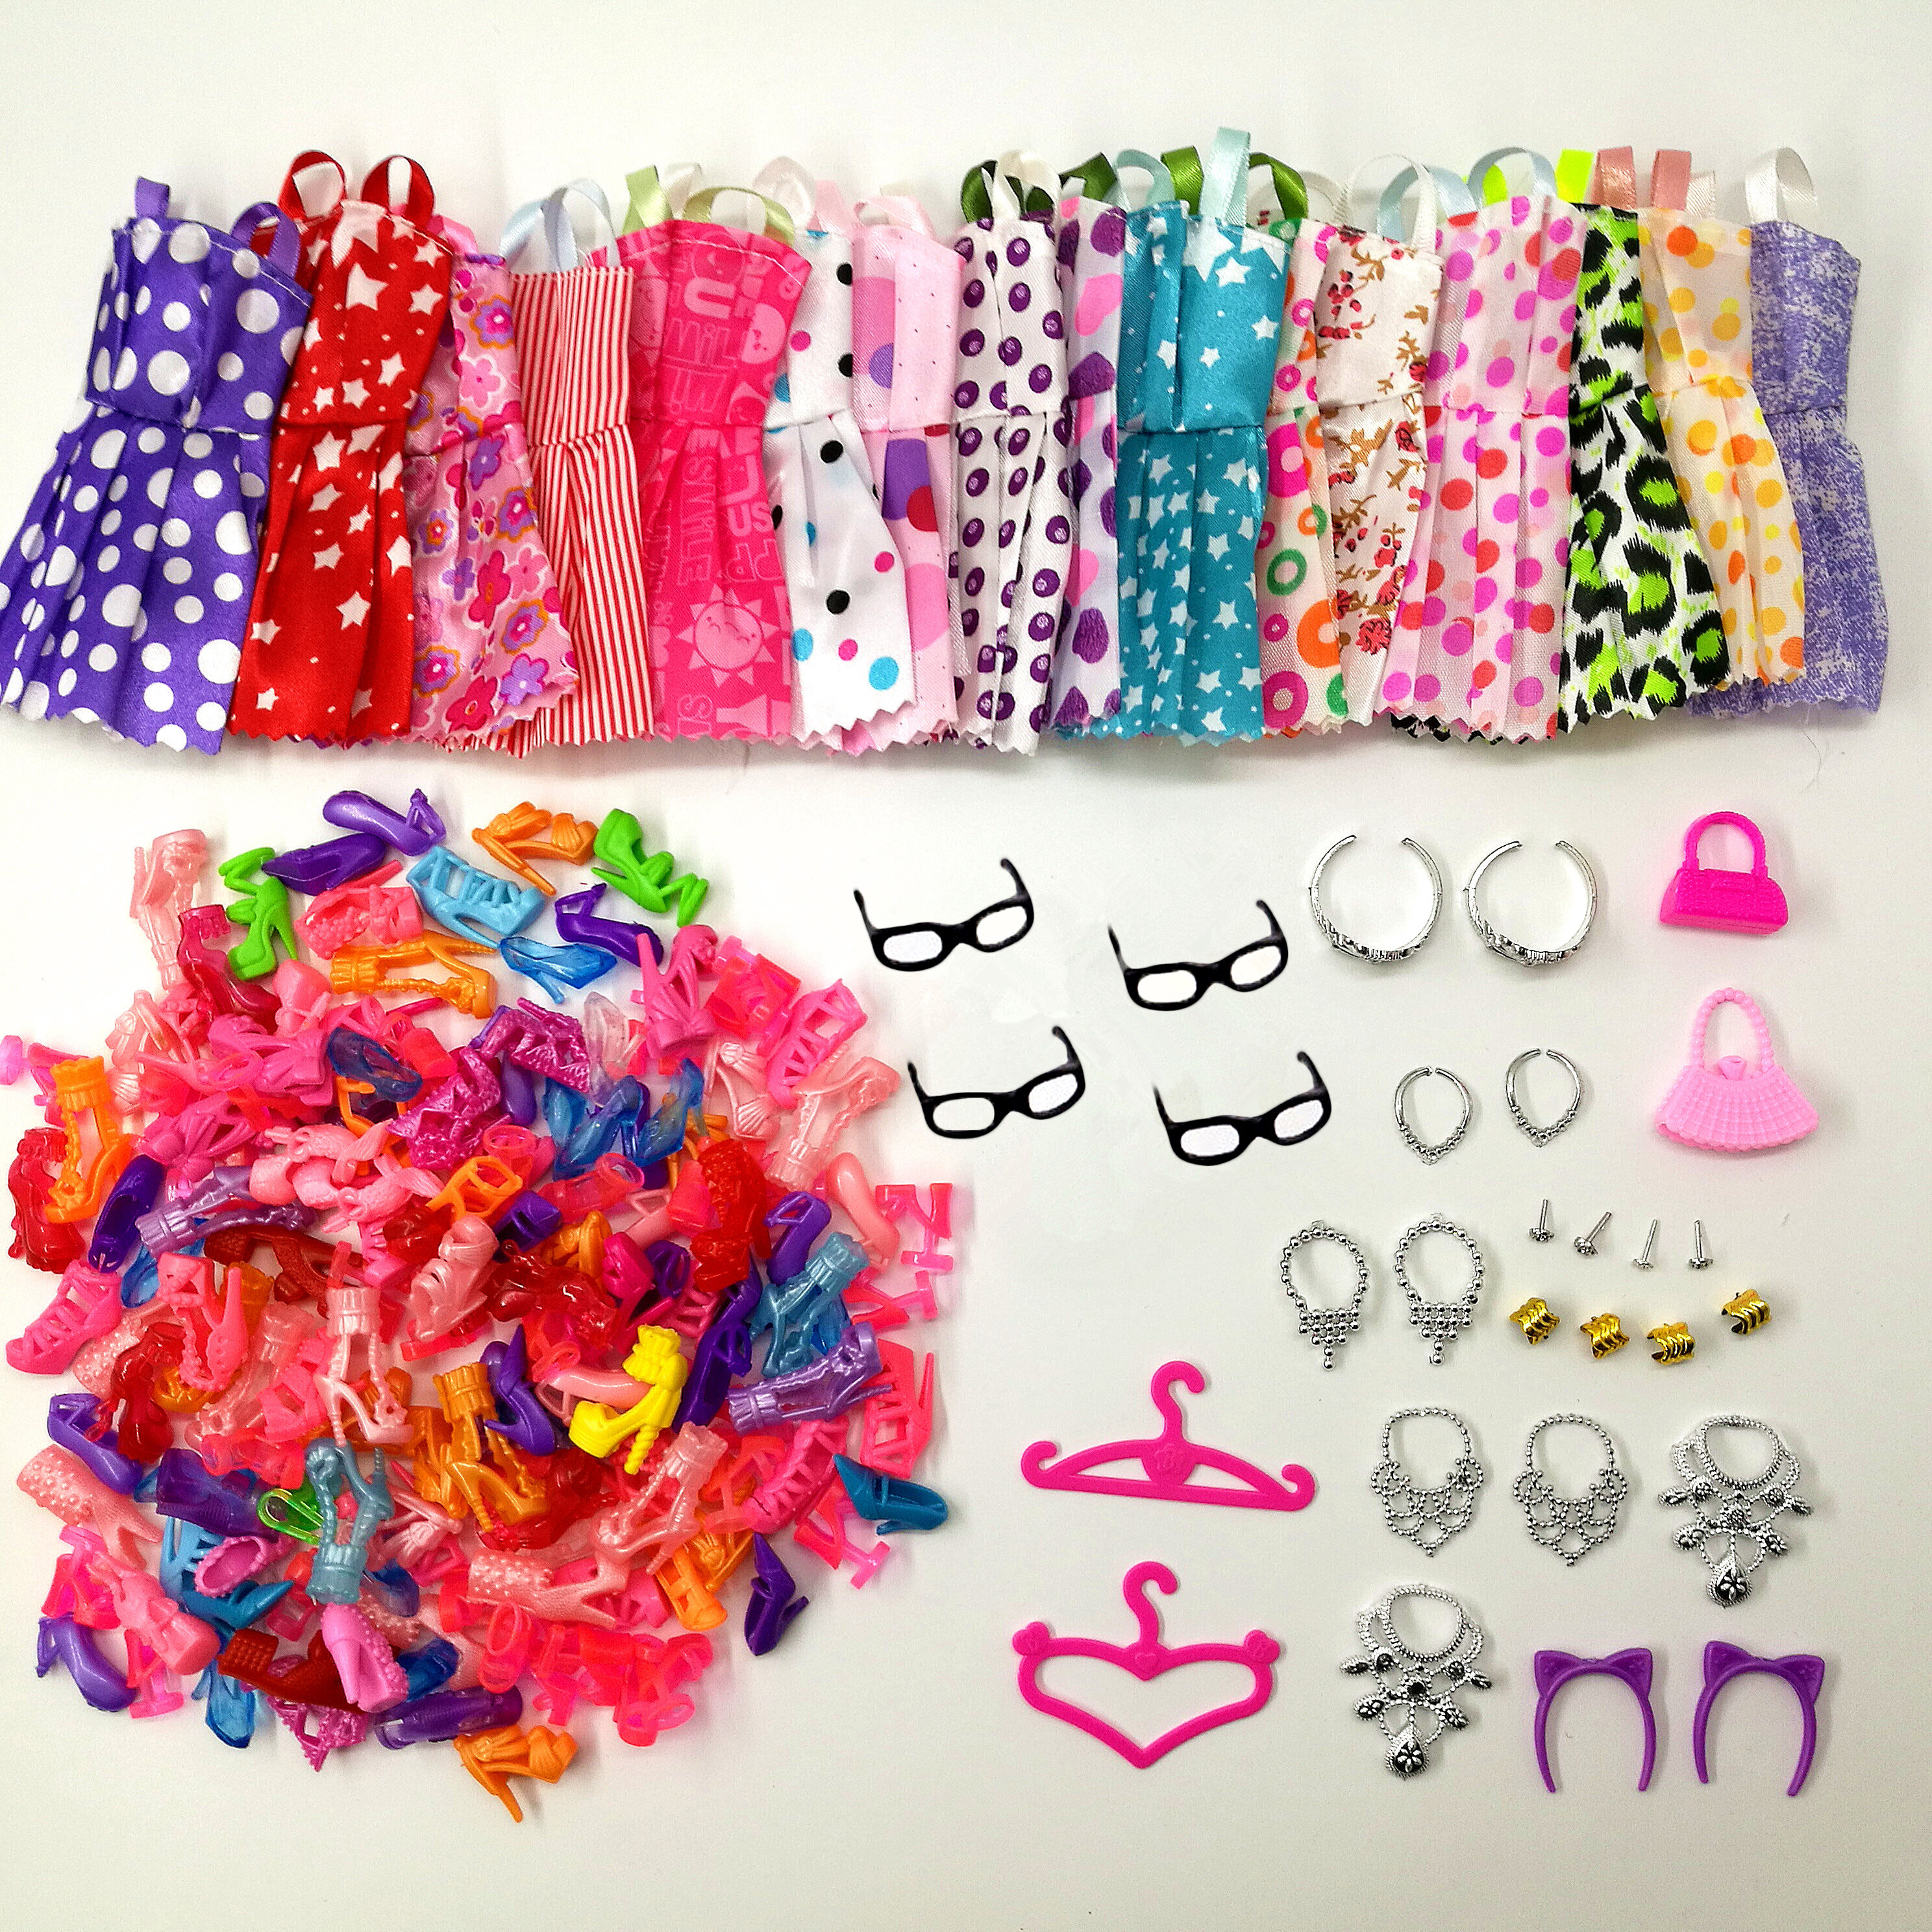 38 Item/Set Doll Accessories=10 Pcs Doll Clothes Dress+4 Glasses+5 Plastic Necklace +2 Hanger+10 Pairs Shoes For Barbie Doll